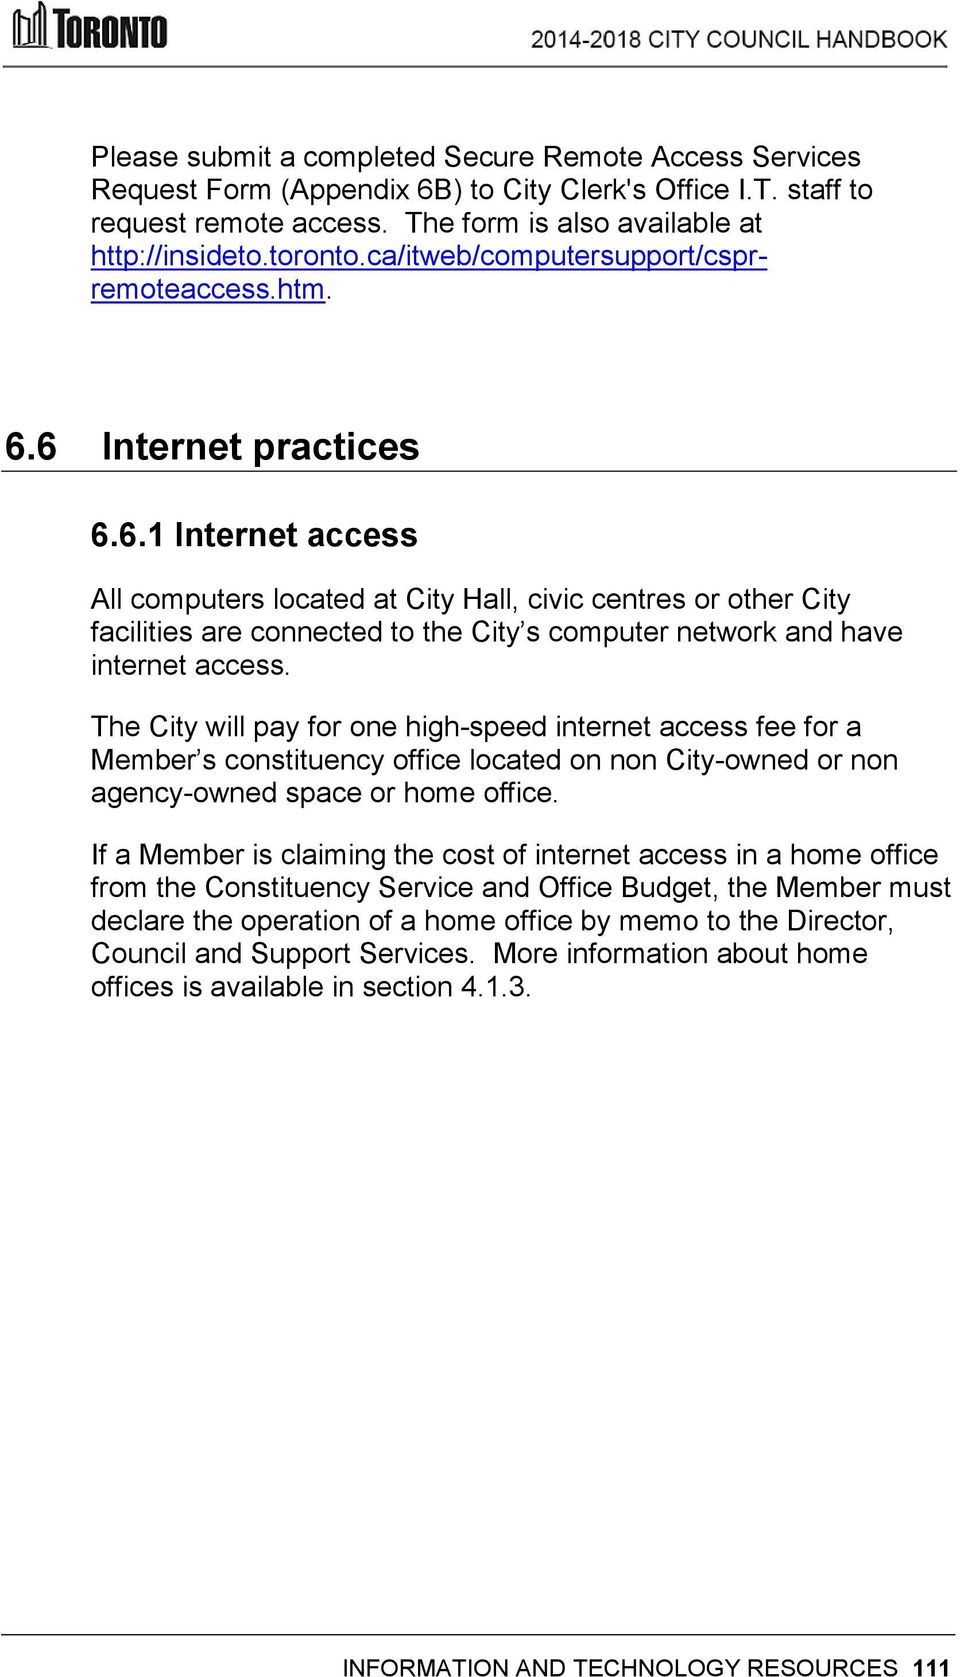 6 Internet practices 6.6.1 Internet access All computers located at City Hall, civic centres or other City facilities are connected to the City s computer network and have internet access.